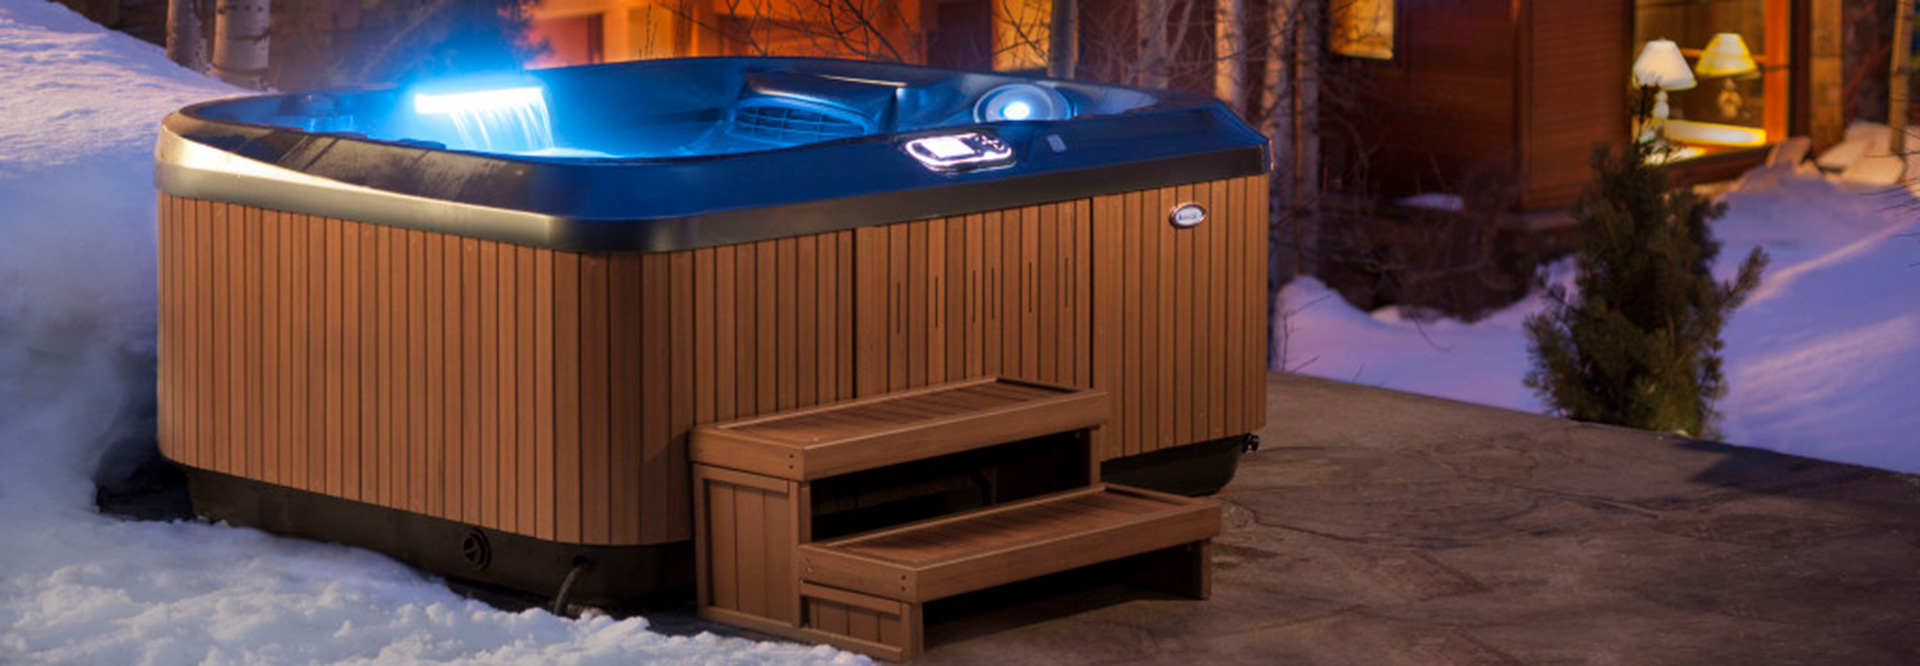 Knickerbocker Pools and Spas is the best place in the area to find the highest quality hot tubs.